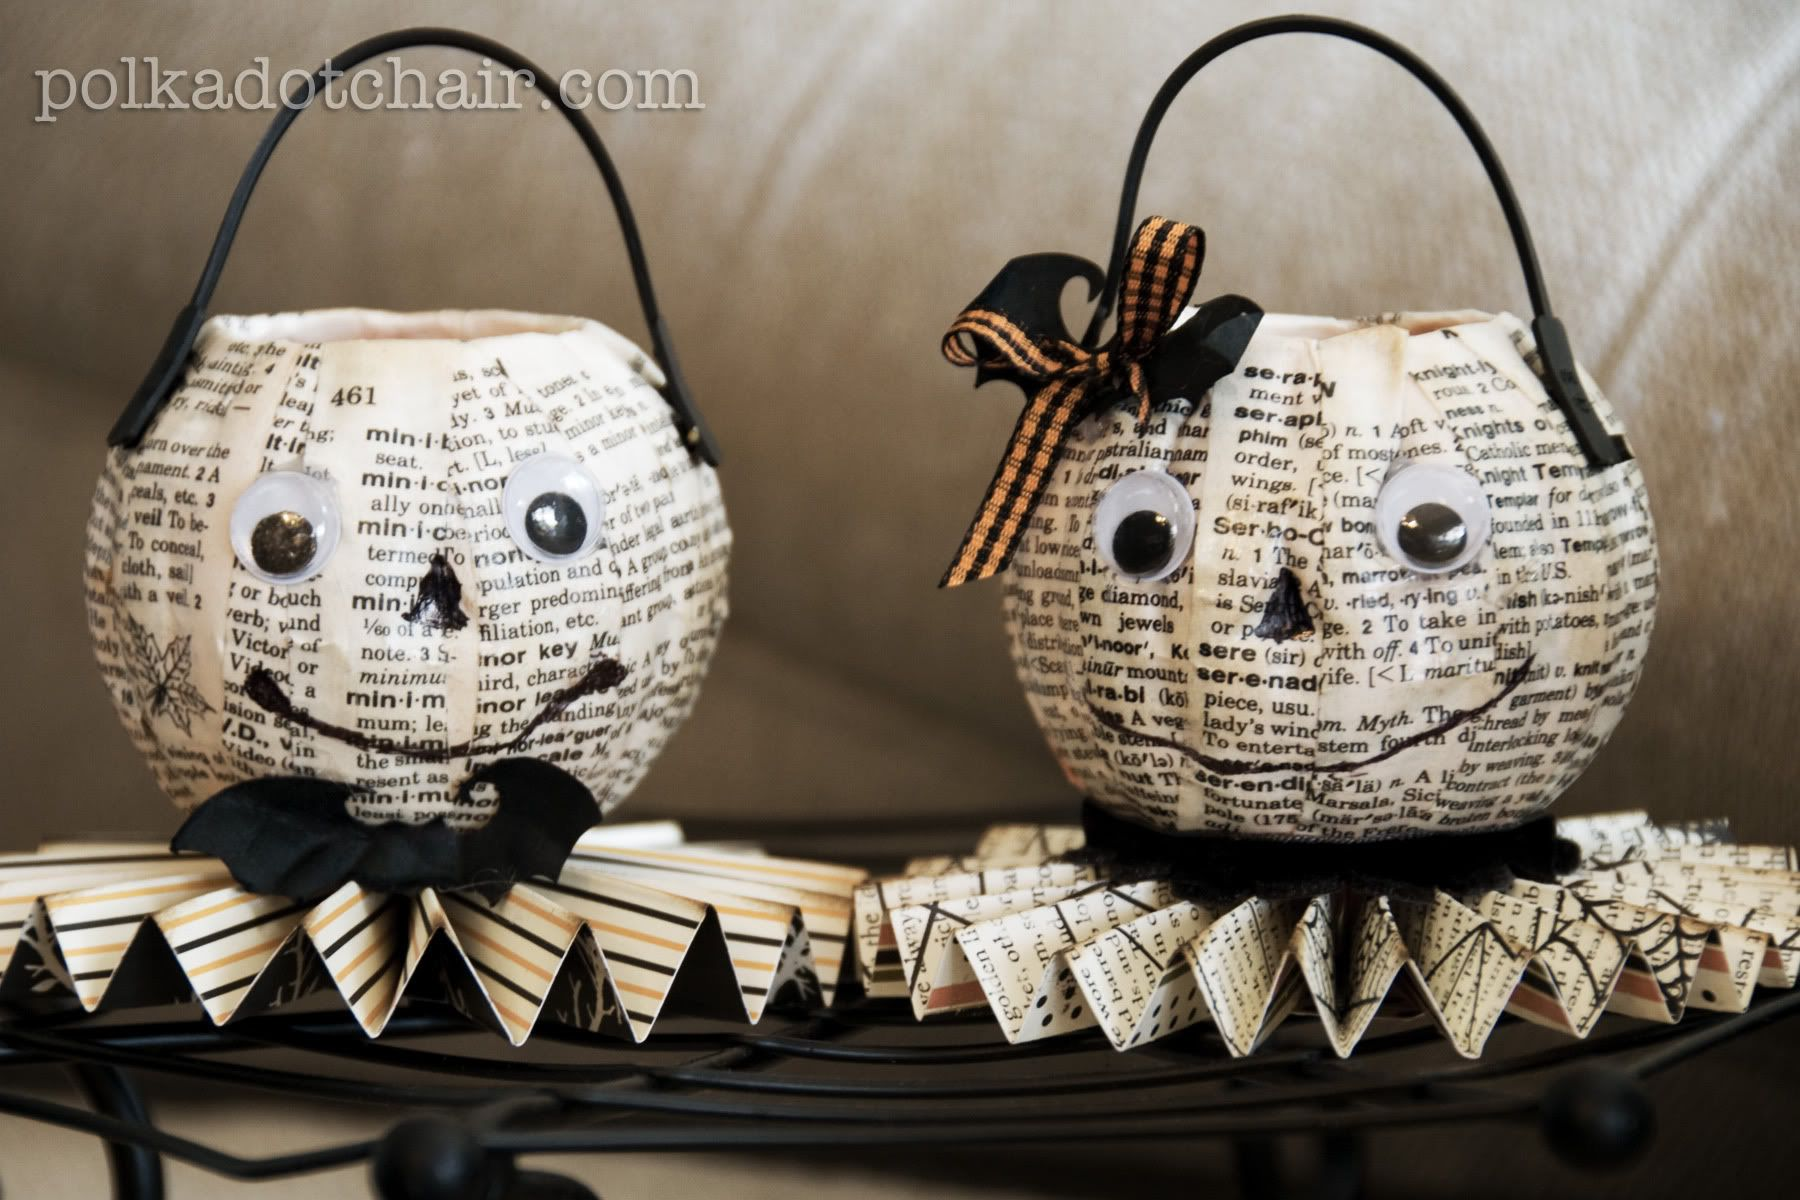 They were made by modge podging a poor neglected destroyed dictionary onto cheap plastic orange pumpkins.